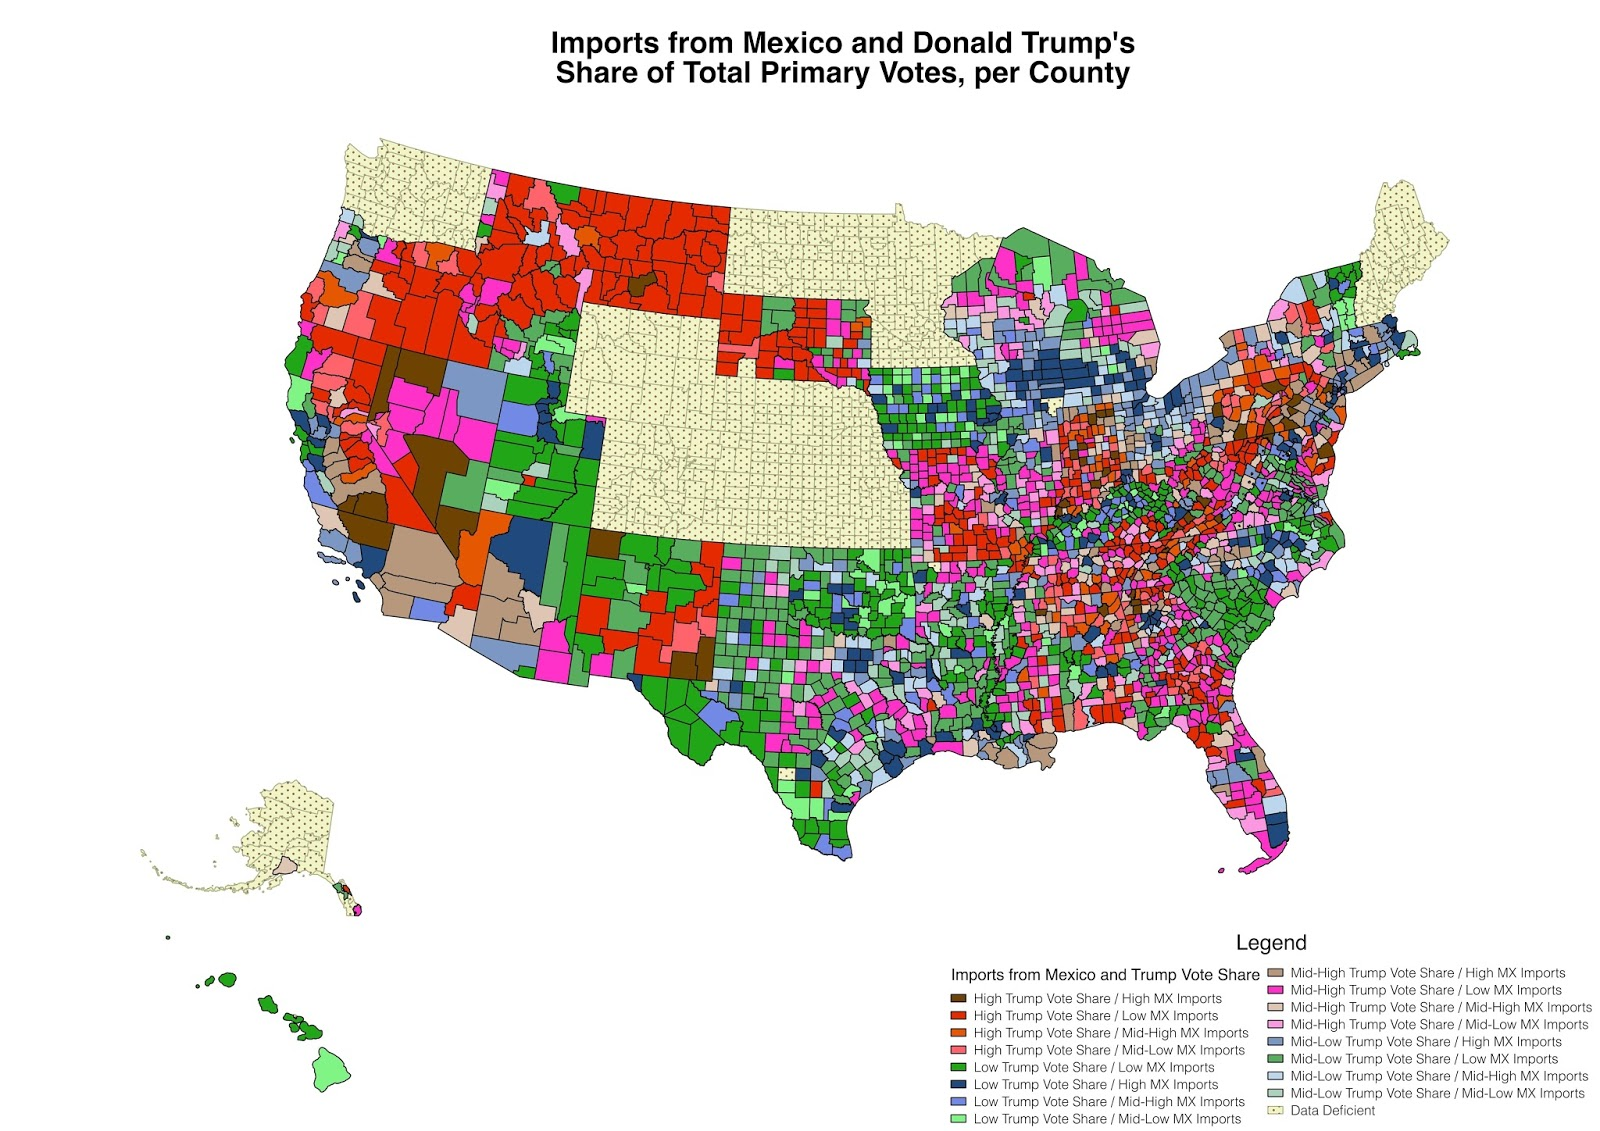 Imports from Mexico and Donald Trump's share of total primary votes, per county